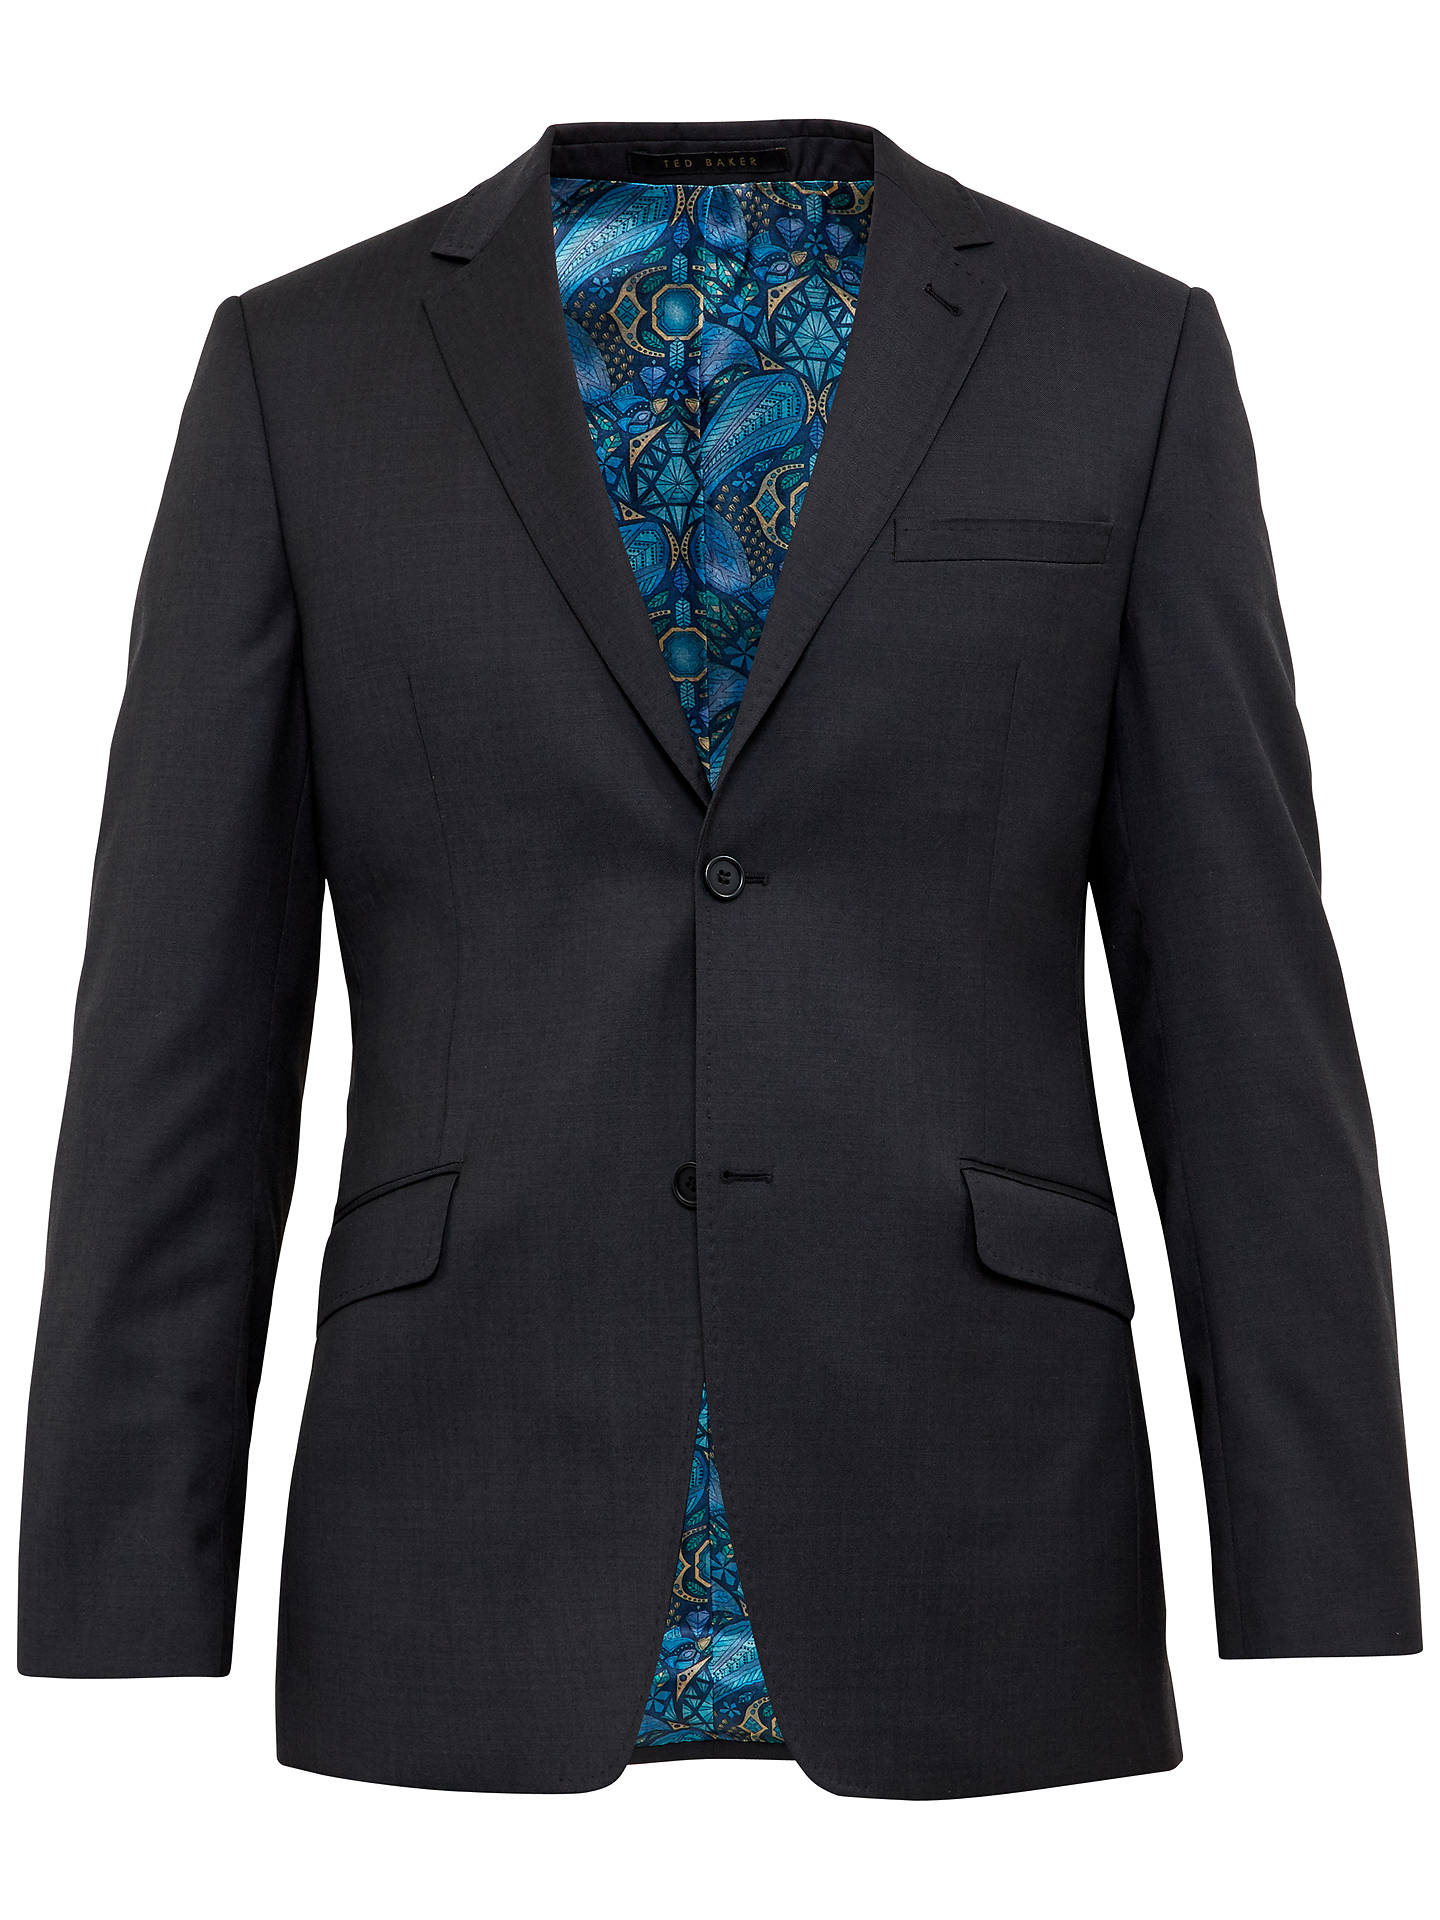 880aa5722 Buy Ted Baker Cotlinj Wool Tailored Fit Suit Jacket